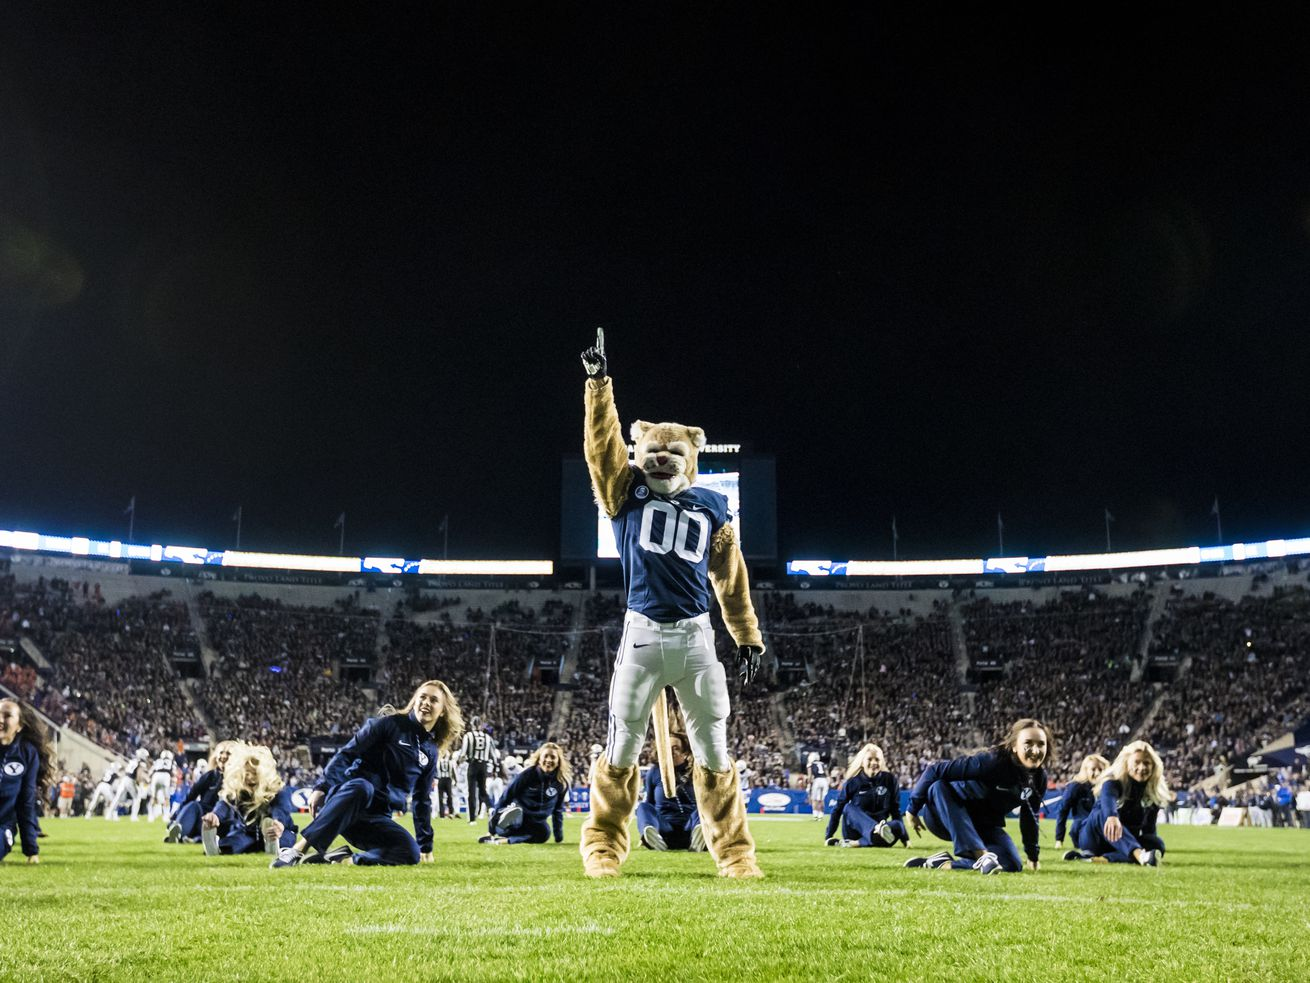 BYU's Cosmo initially snubbed in College Sports on Sirius XM 64-mascot tournament